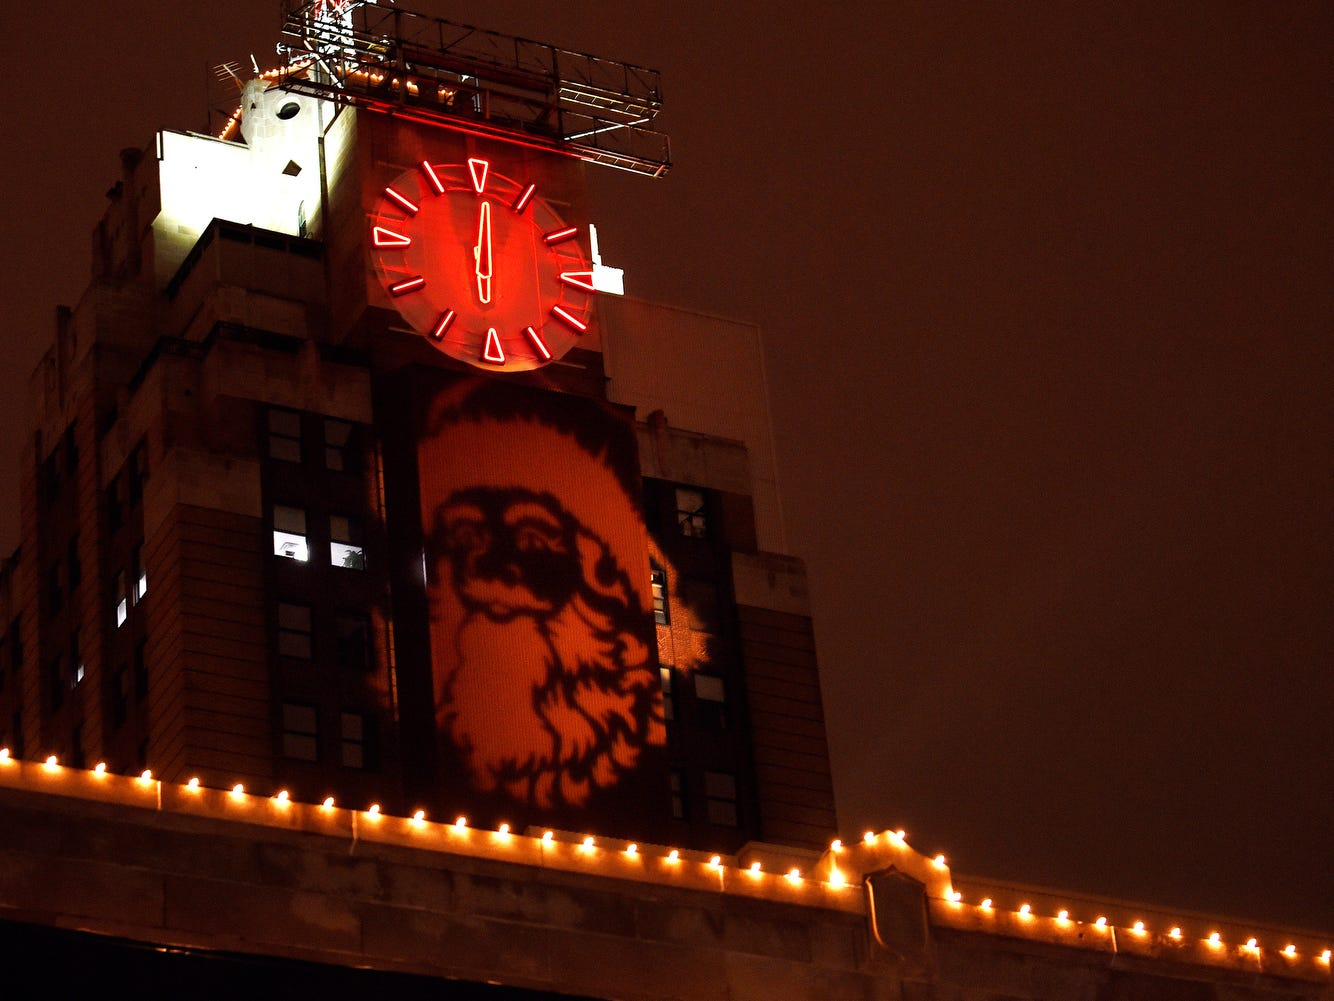 An image of Santa is projected onto the Boji Tower as a spectator watches from the window of a building on Washington Square during the Silver Bells in the City Electric Light Parade on Friday, Nov. 16, 2018, in downtown Lansing.